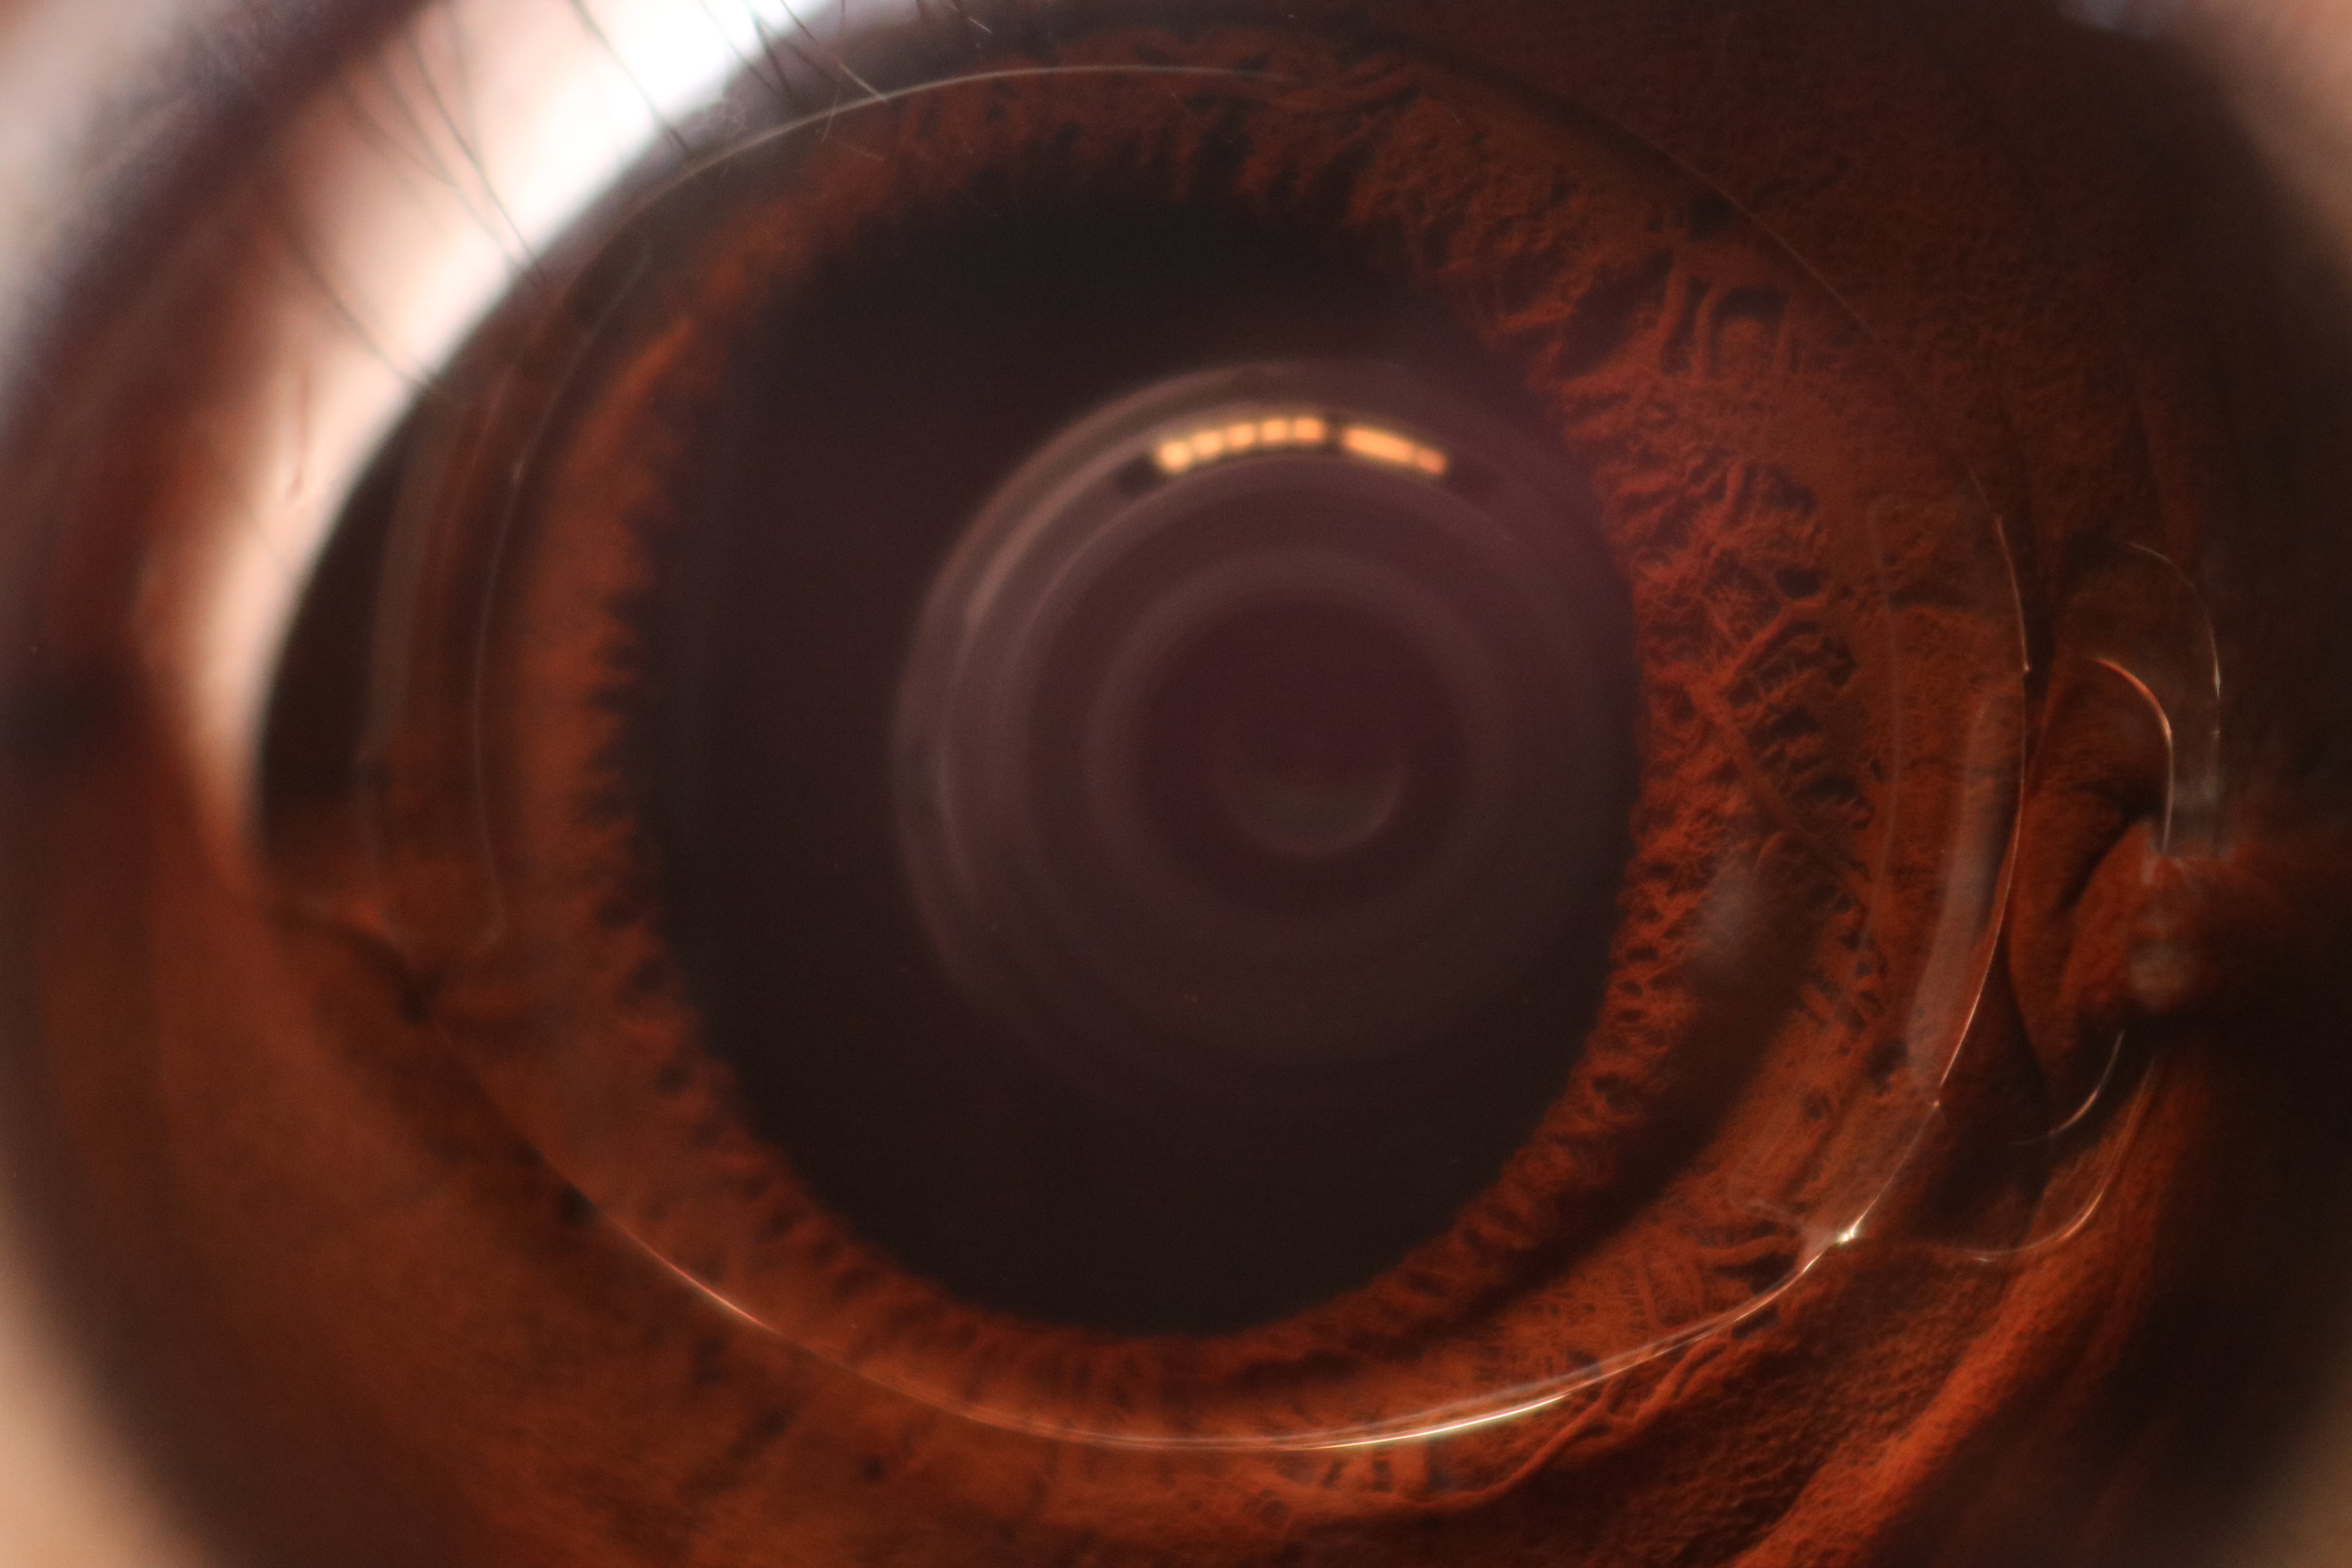 Intraocular Lens In A Phakic Eye